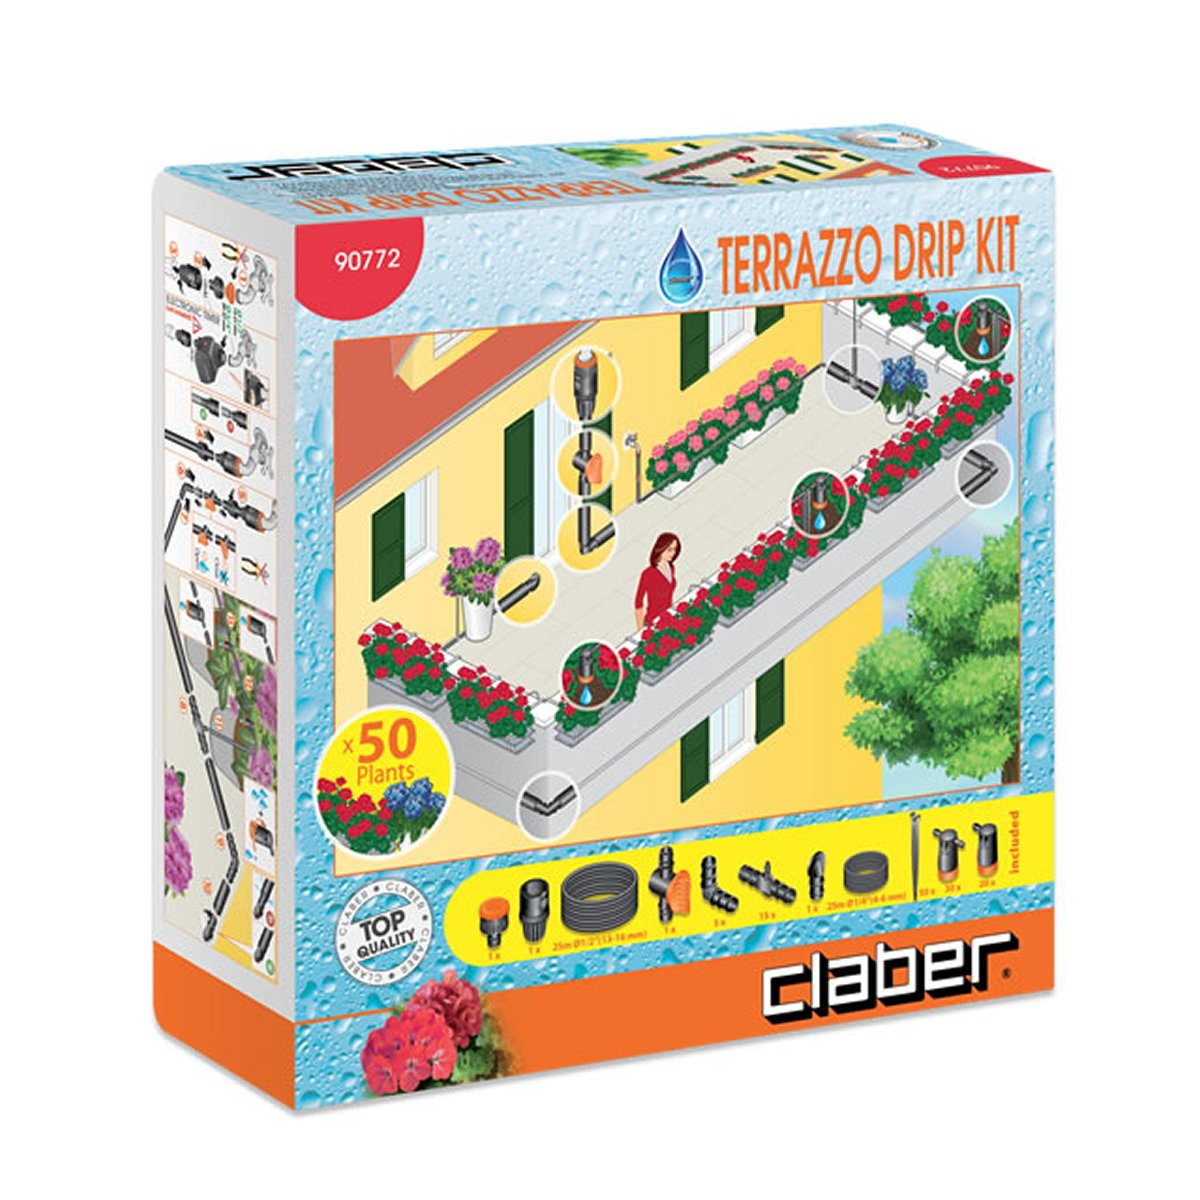 Claber Terrazzo Drip Irrigation Kit for 50 plants - model 90772 D90772000